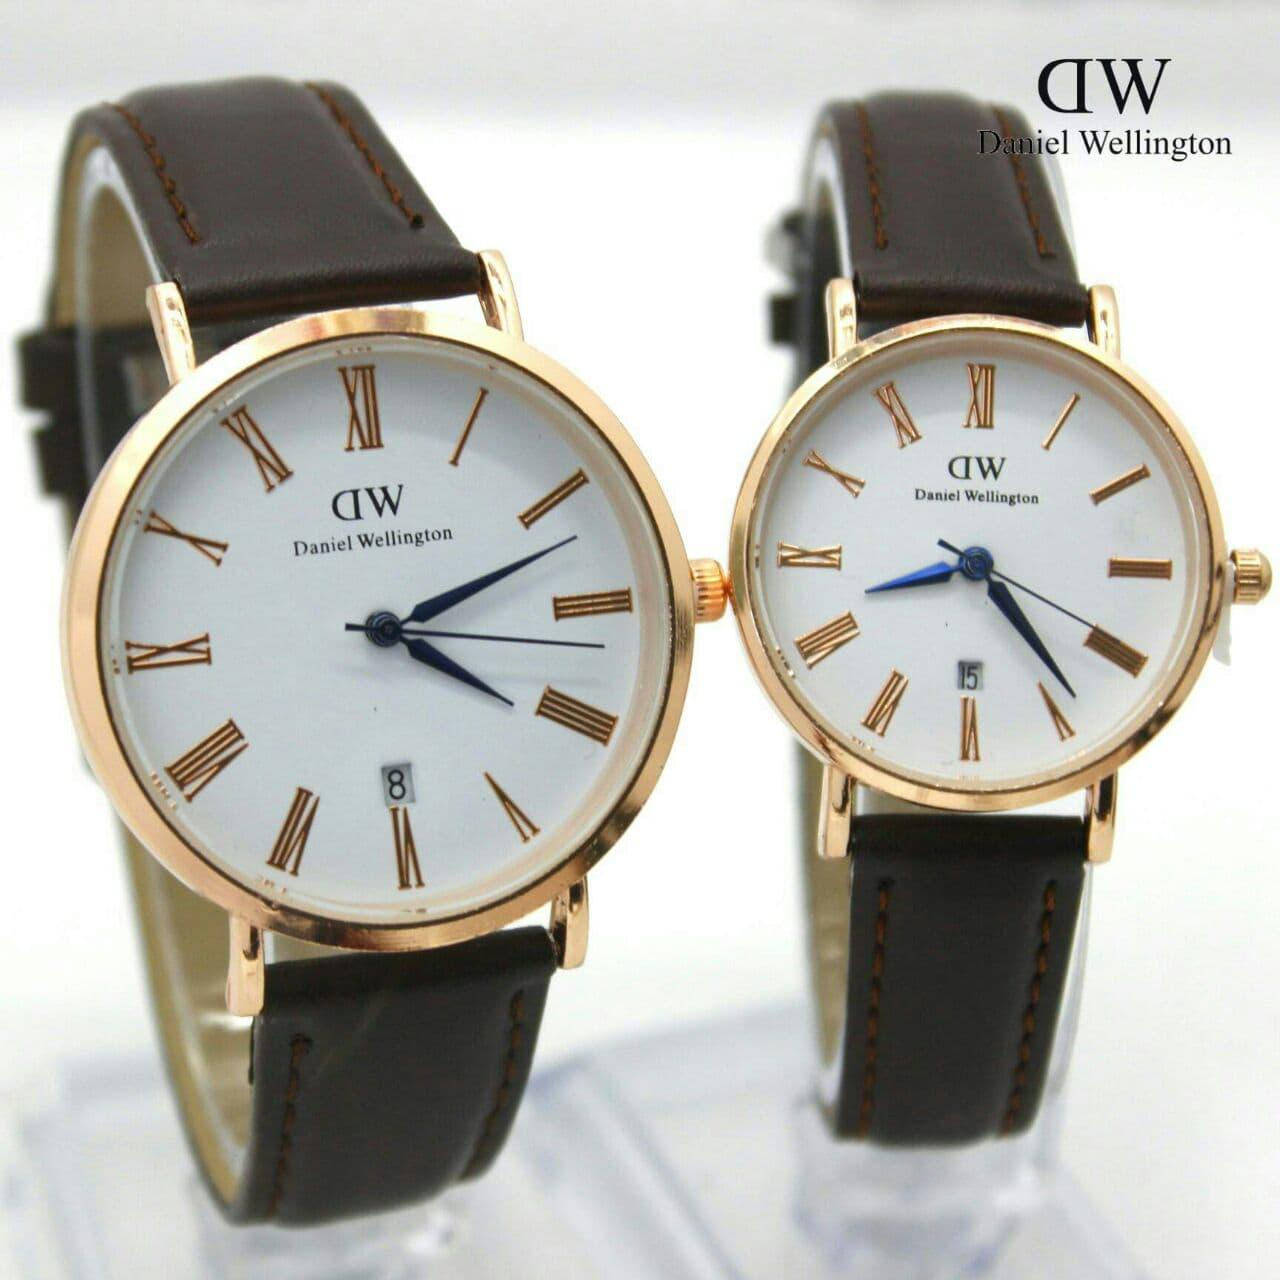 Jam Tangan DANIEL WELLINGTON COUPLE ROMAWI JARUM BIRU KULIT